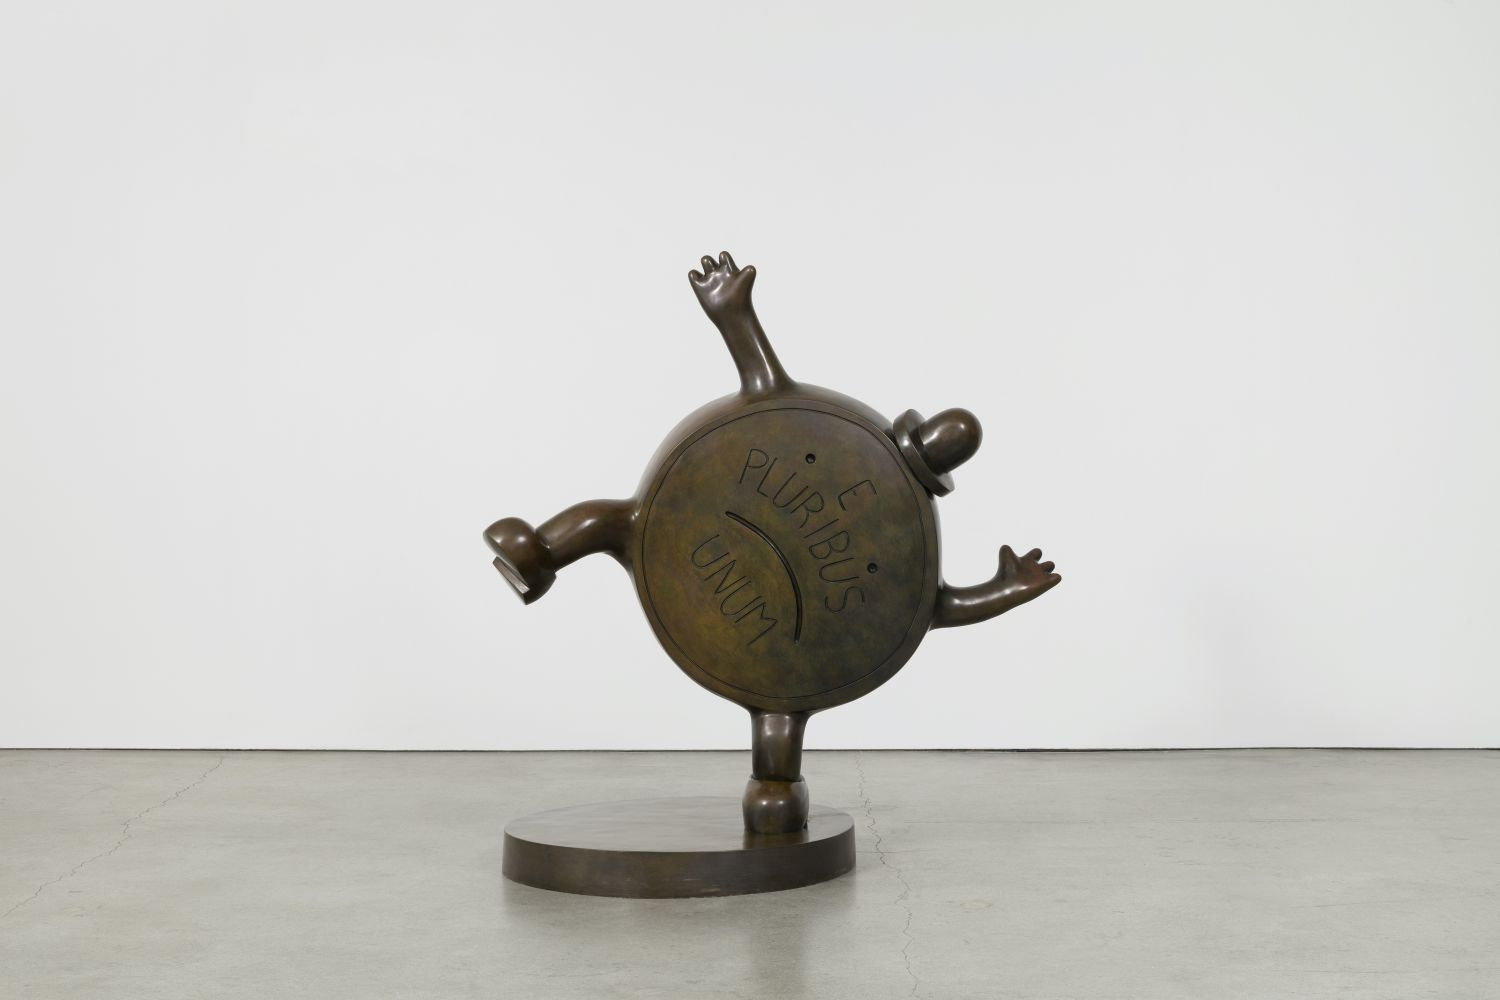 Bronze sculpture of a personified penny coin with top hat by Tom Otterness.